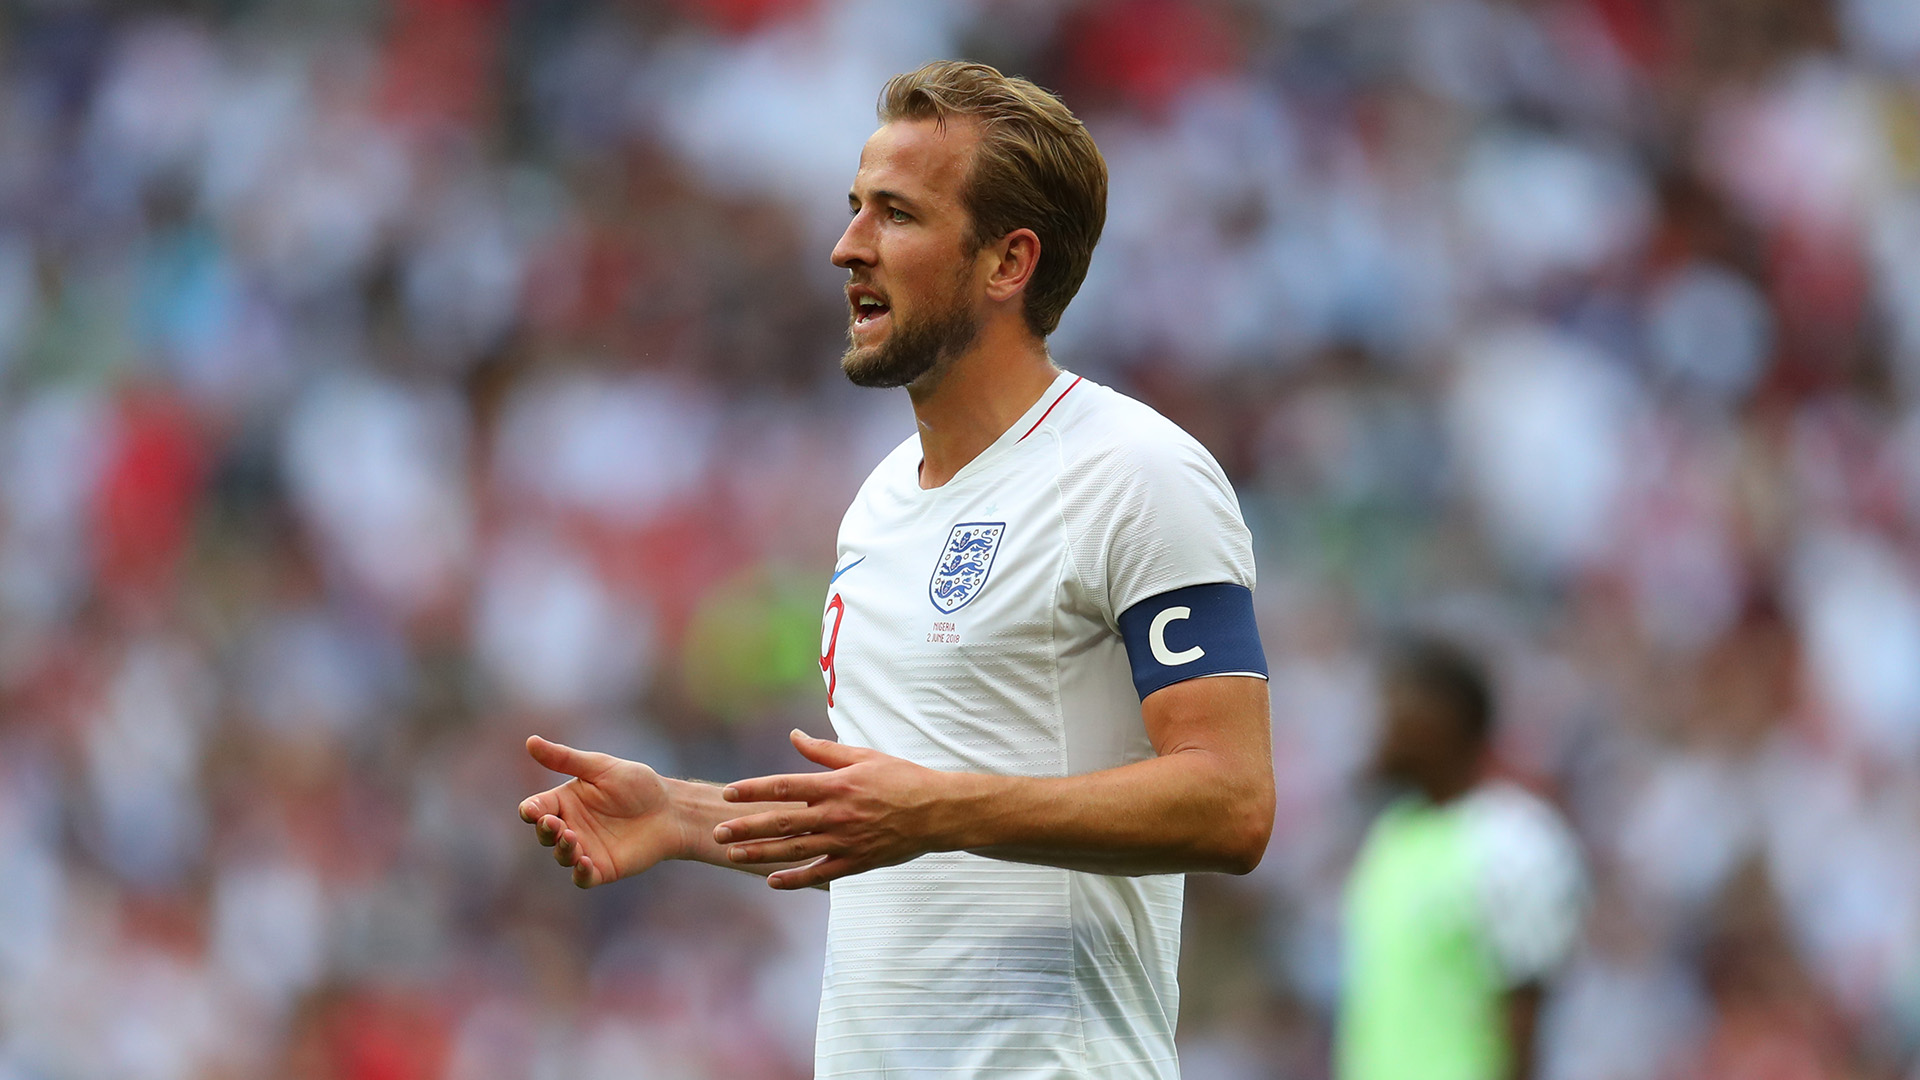 Harry Kane Saves the Day but England Look Static and Sloppy